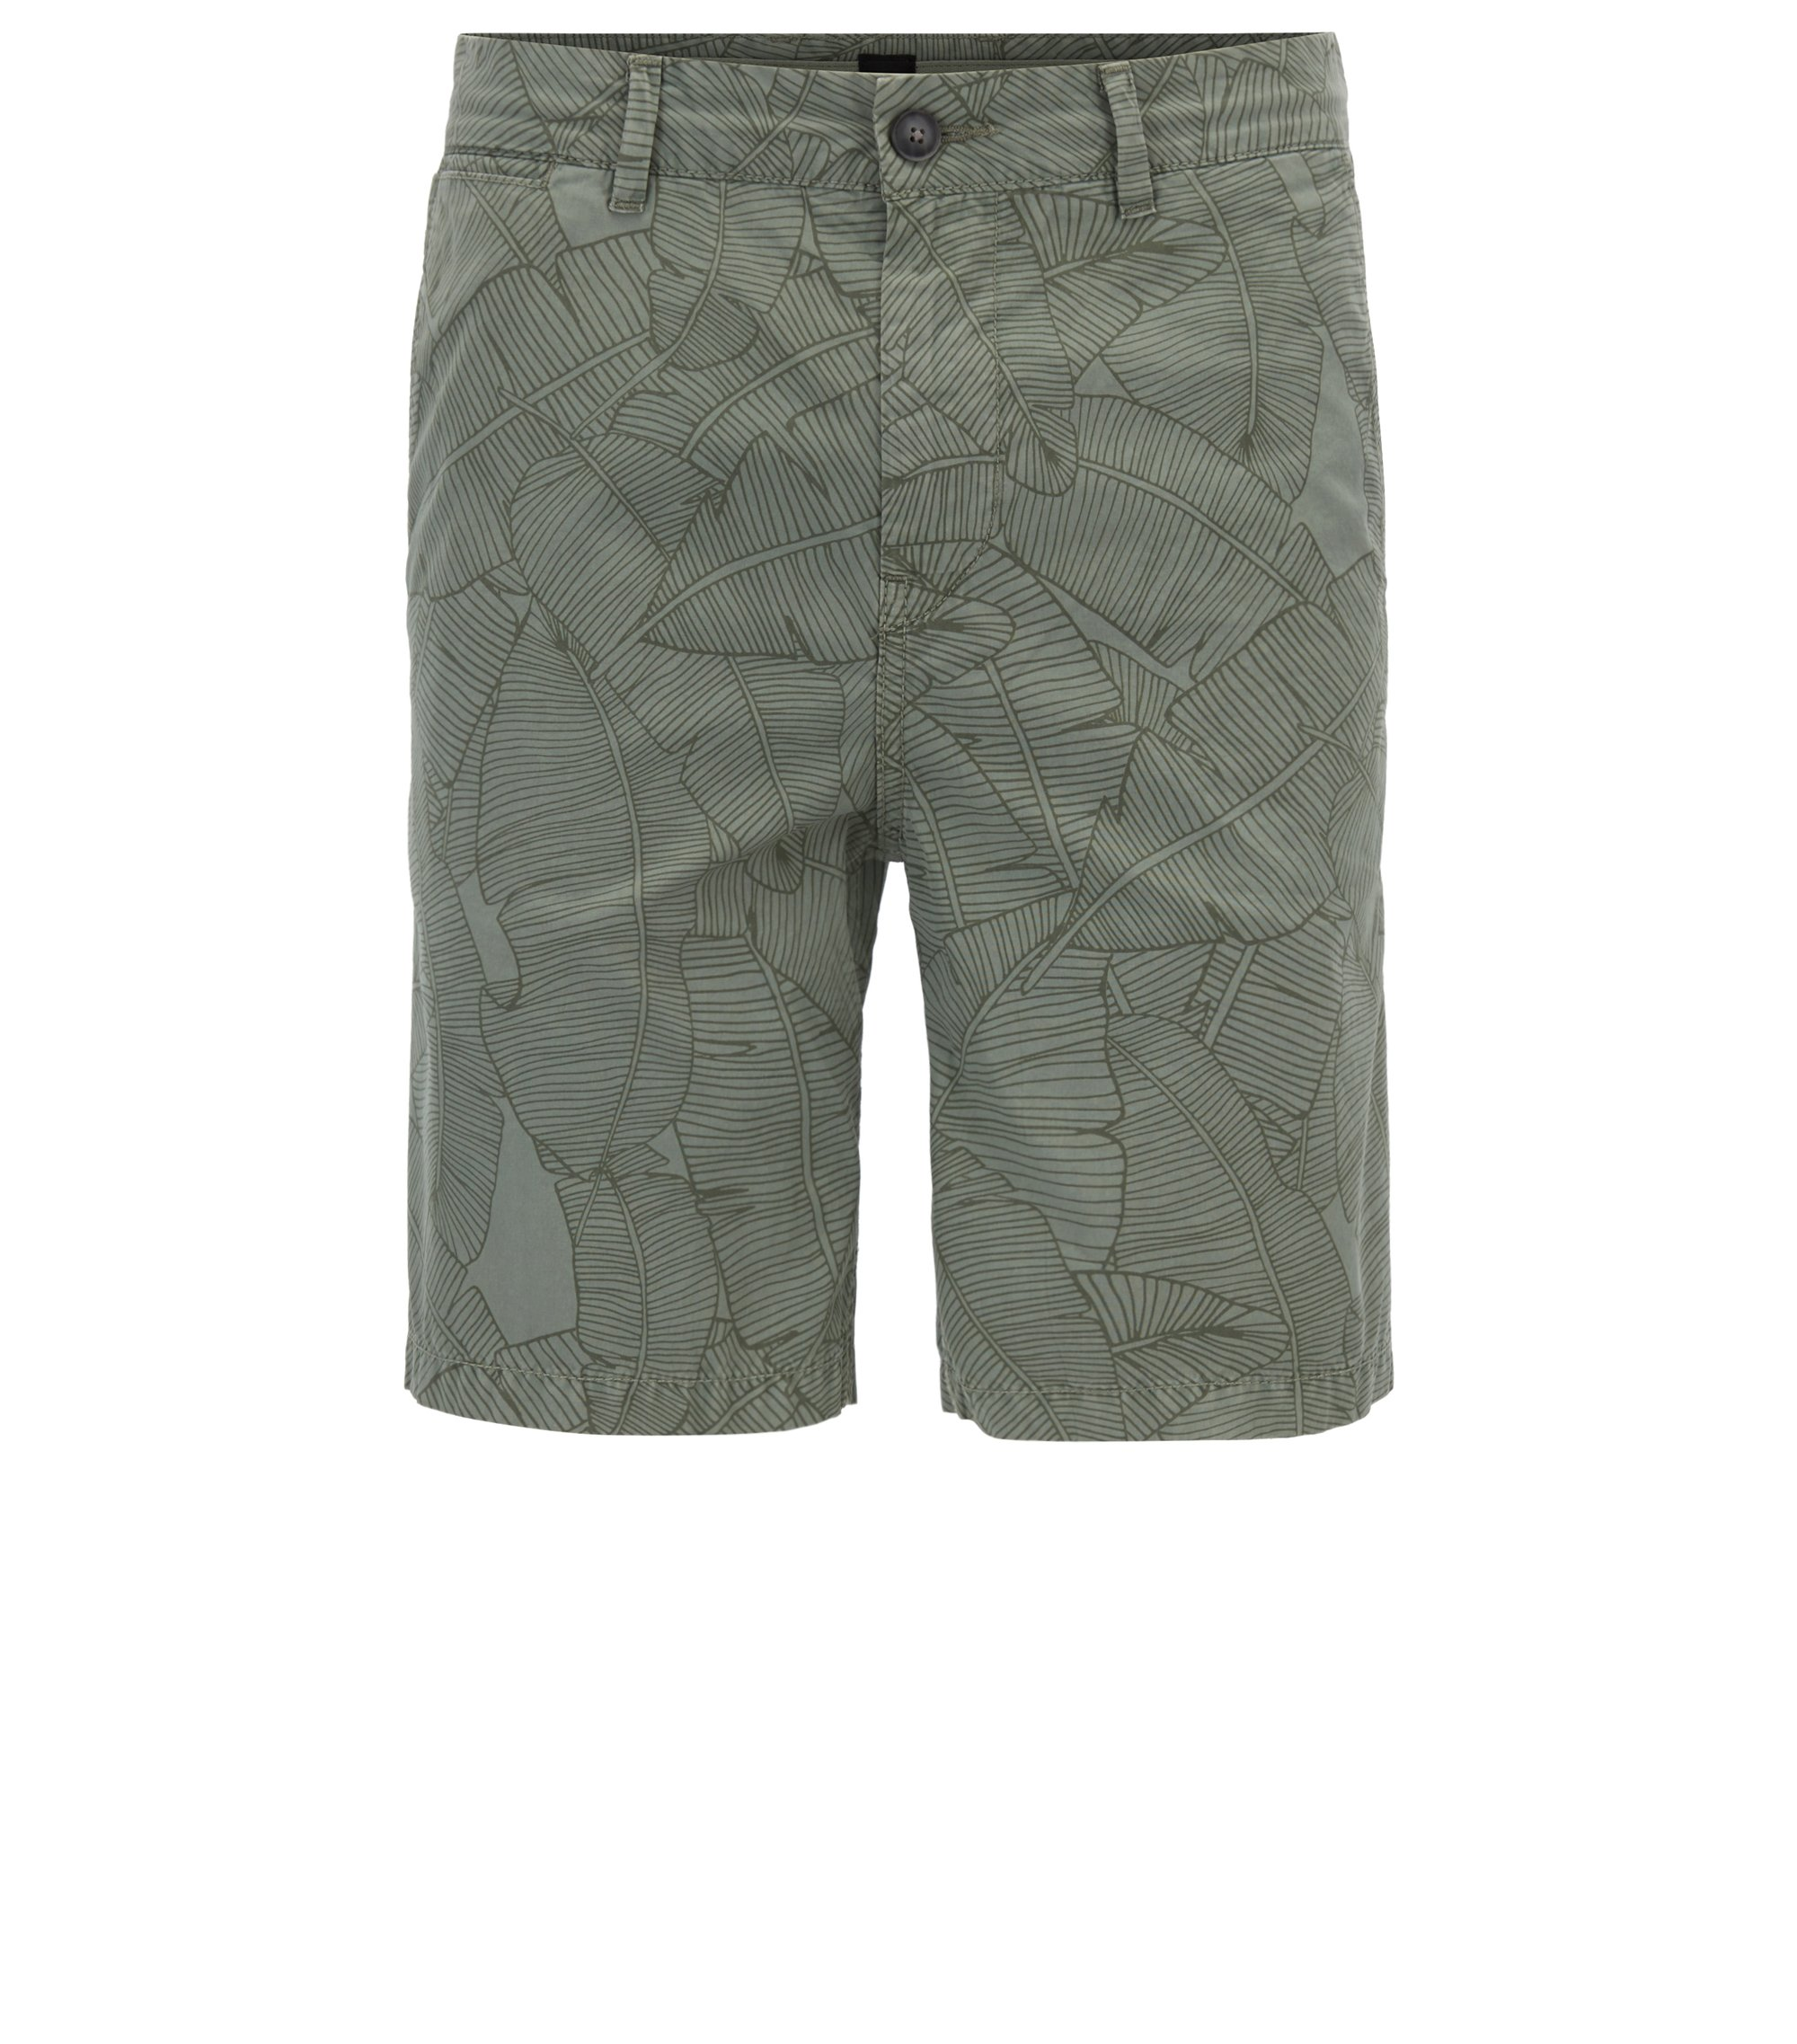 Shorts de algodón tapered fit con estampado de hoja de banano, Cal